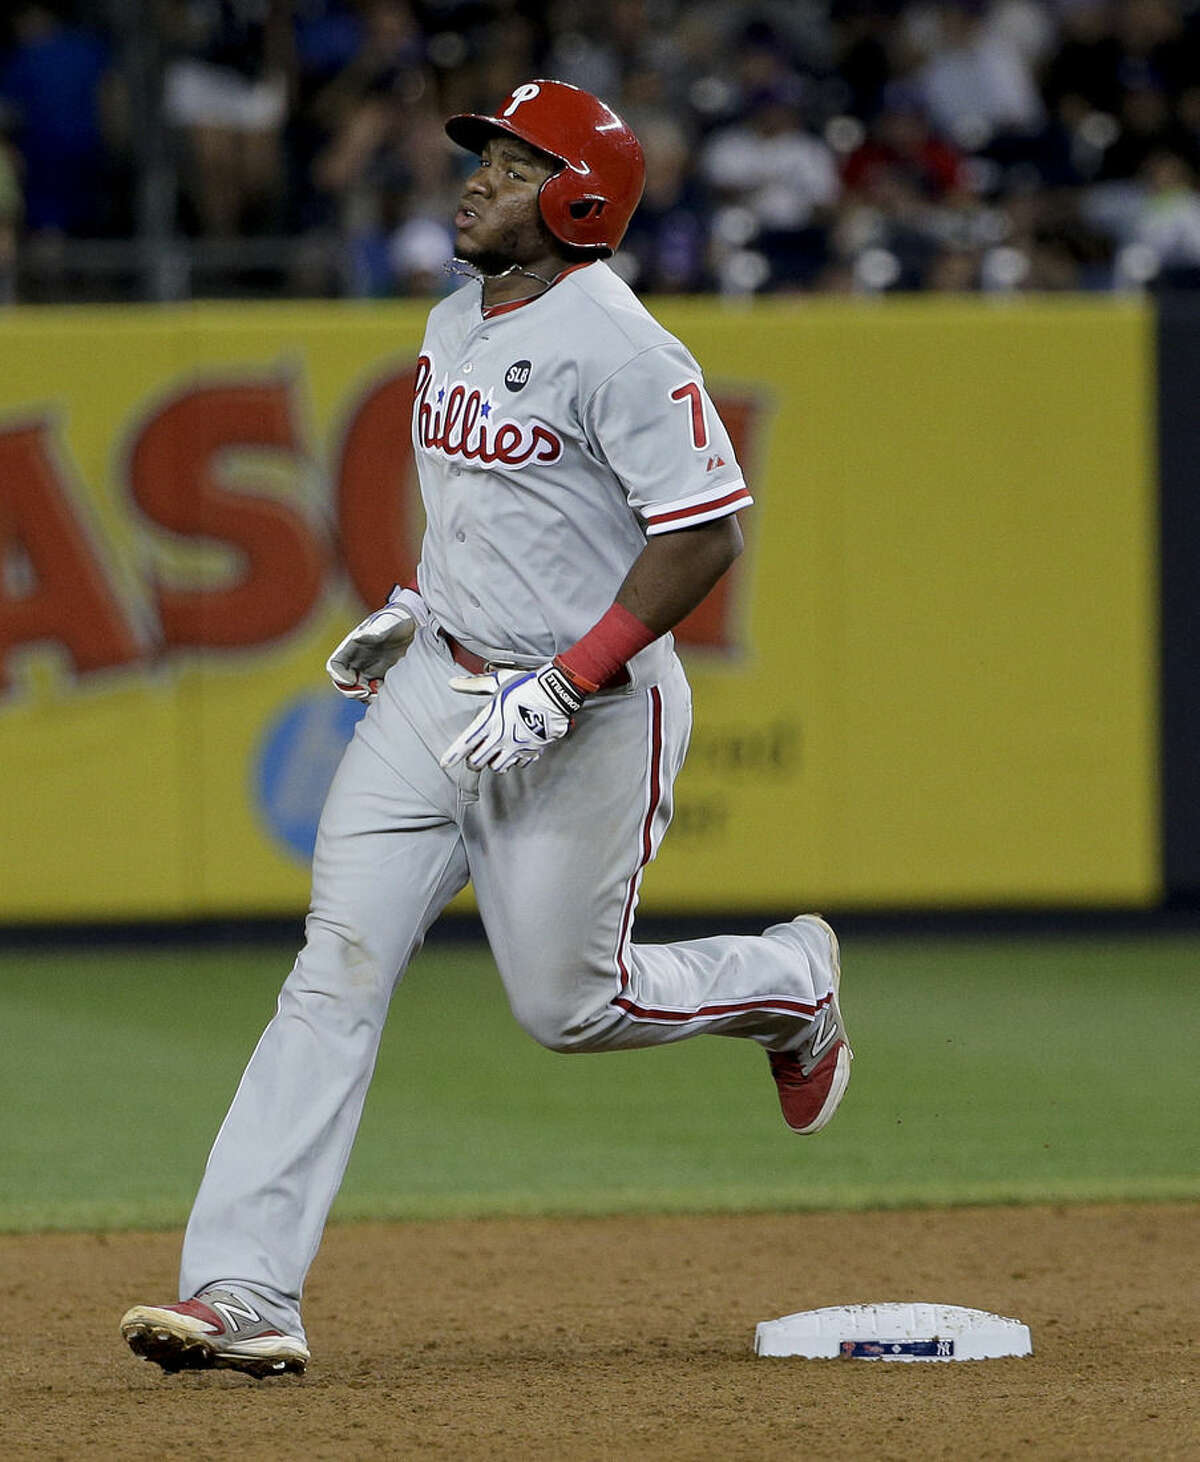 Philadelphia Phillies Maikel Franco (7) rounds second base after hitting a solo home run against the New York Yankees during the sixth inning of a baseball game, Monday, June 22, 2015, in New York. (AP Photo/Julie Jacobson)